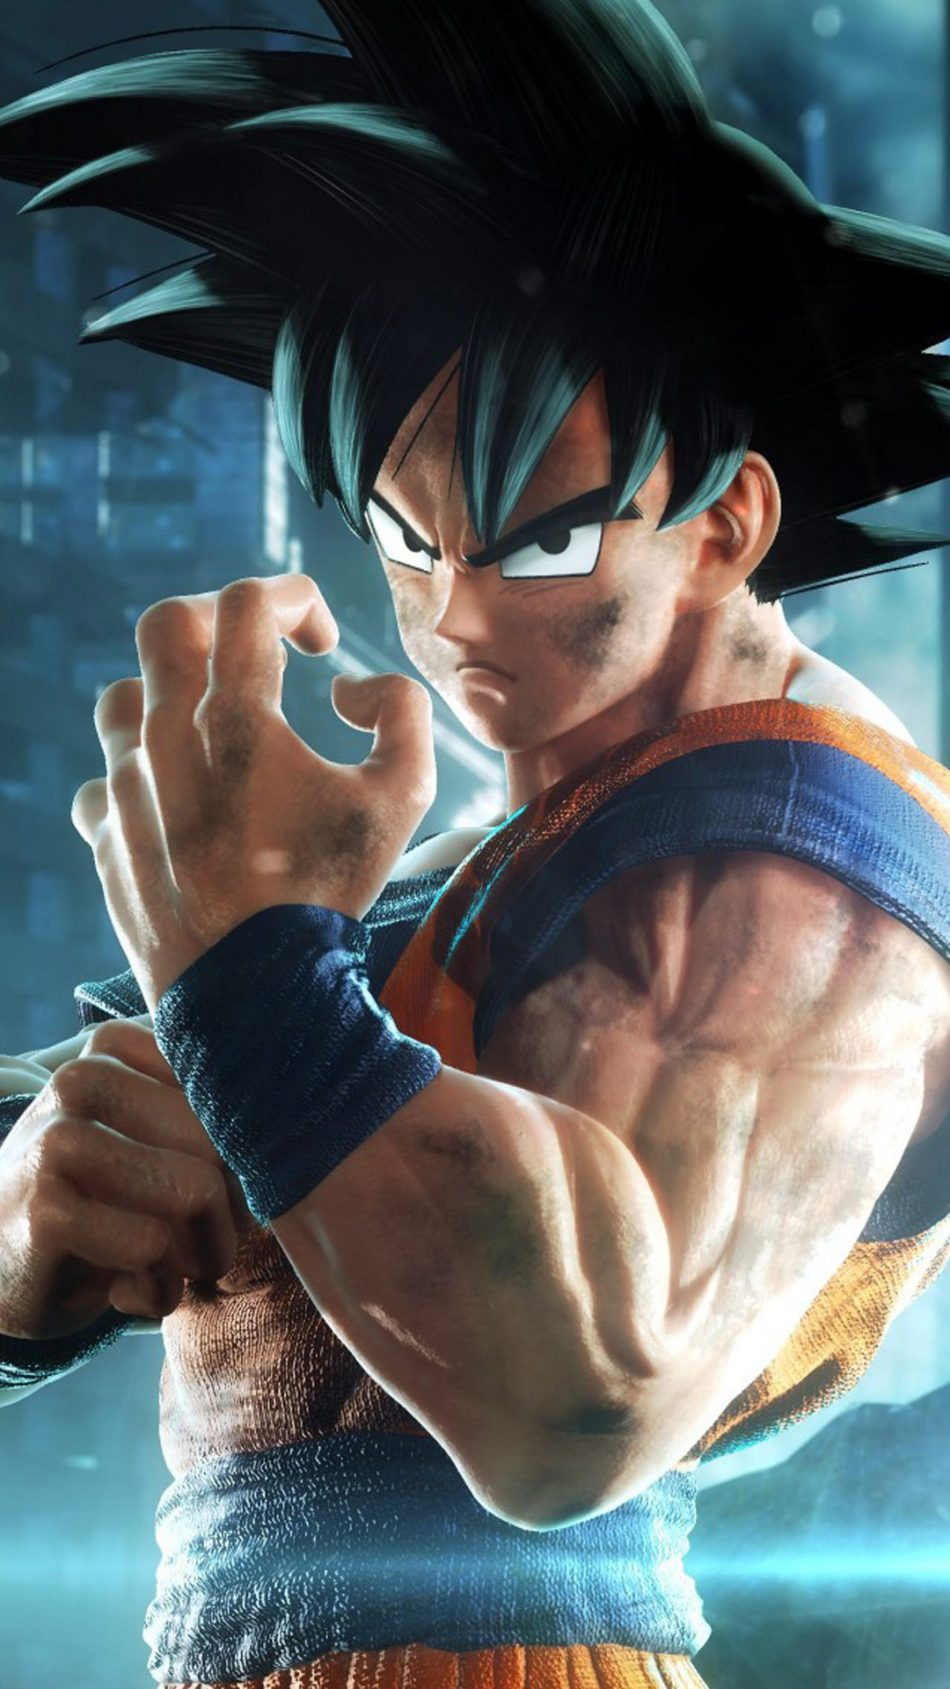 Download Goku Jump Force Free Pure 4k Ultra Hd Mobile Wallpaper